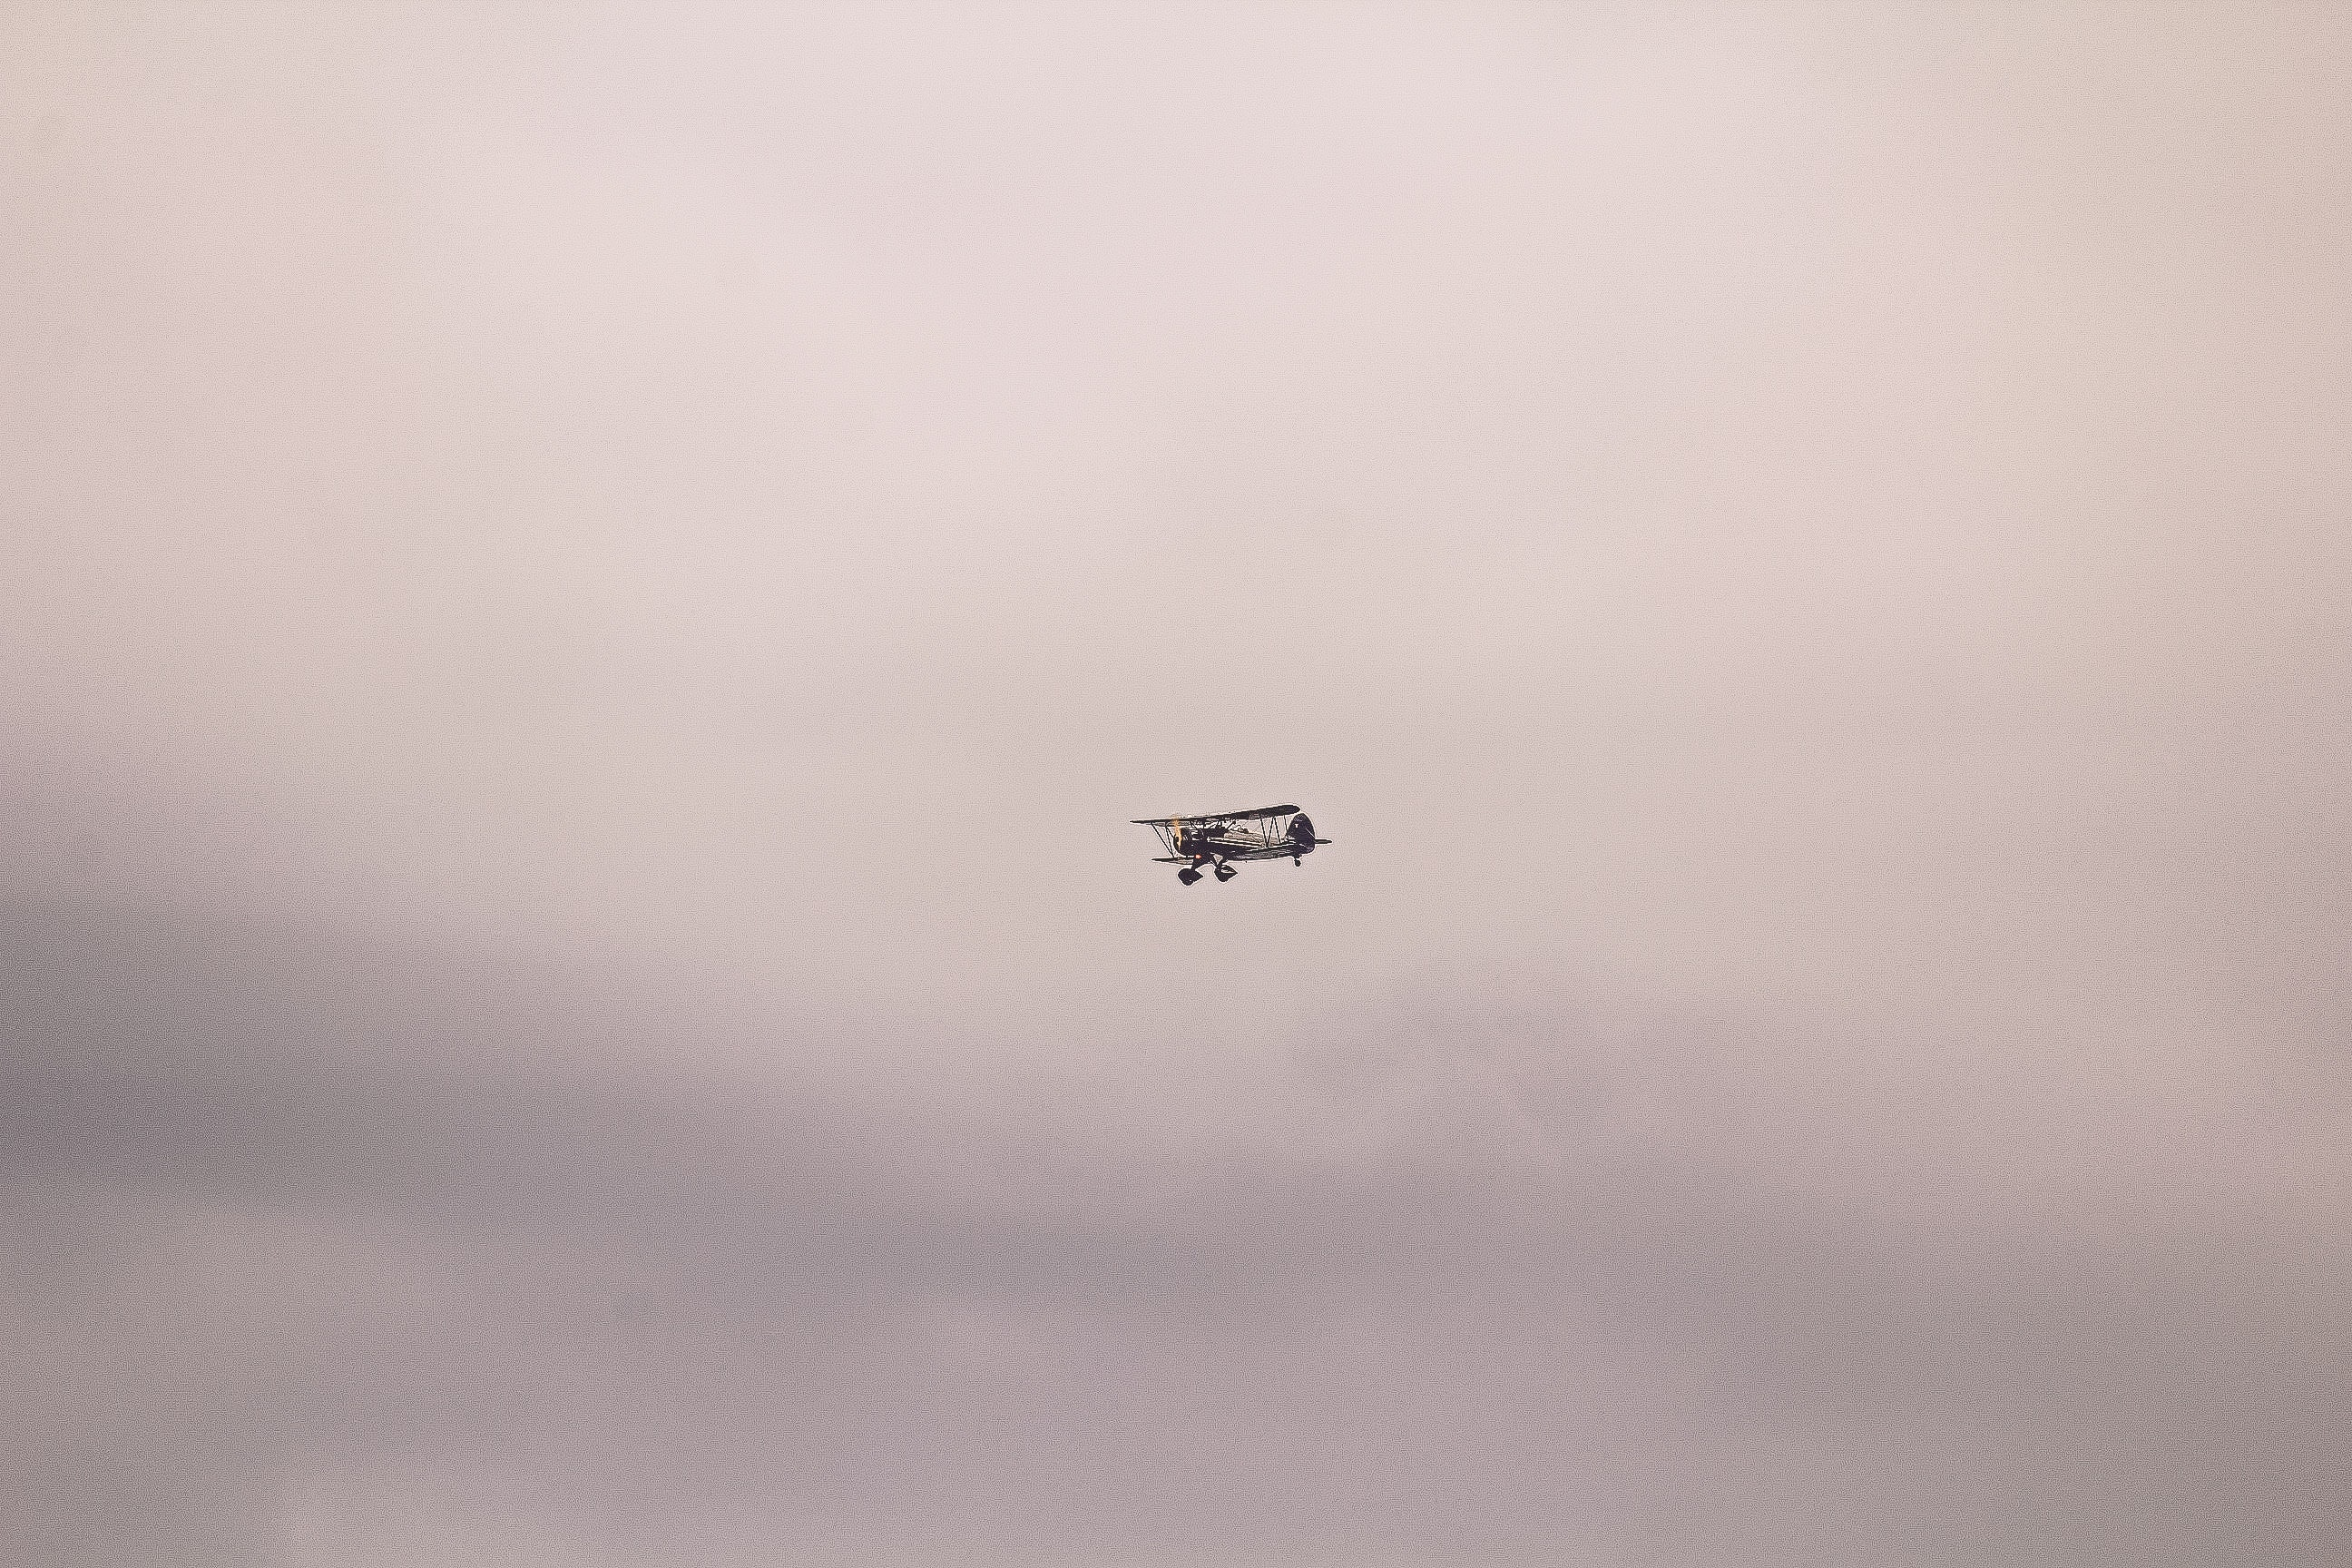 Gray and Black Biplane, Aeroplane, Flying, Transportation system, Technology, HQ Photo